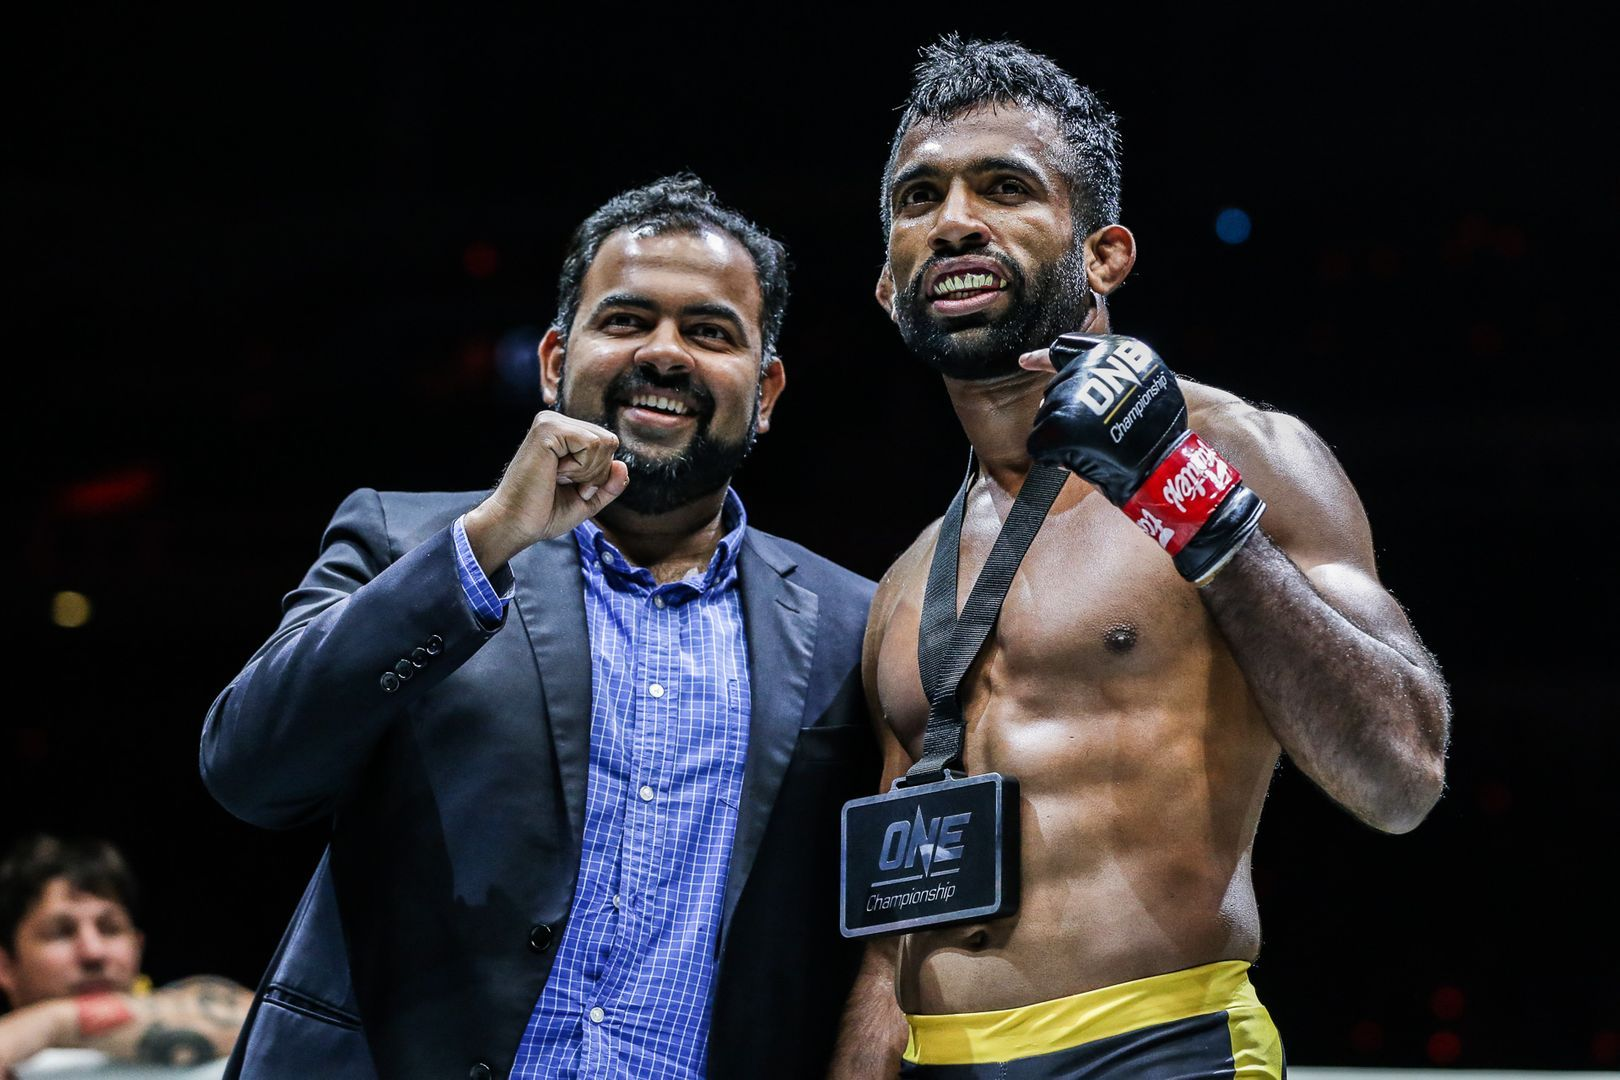 Rahul Raju celebrates his win against Furqan Cheema at ONE EDGE OF GREATNESS